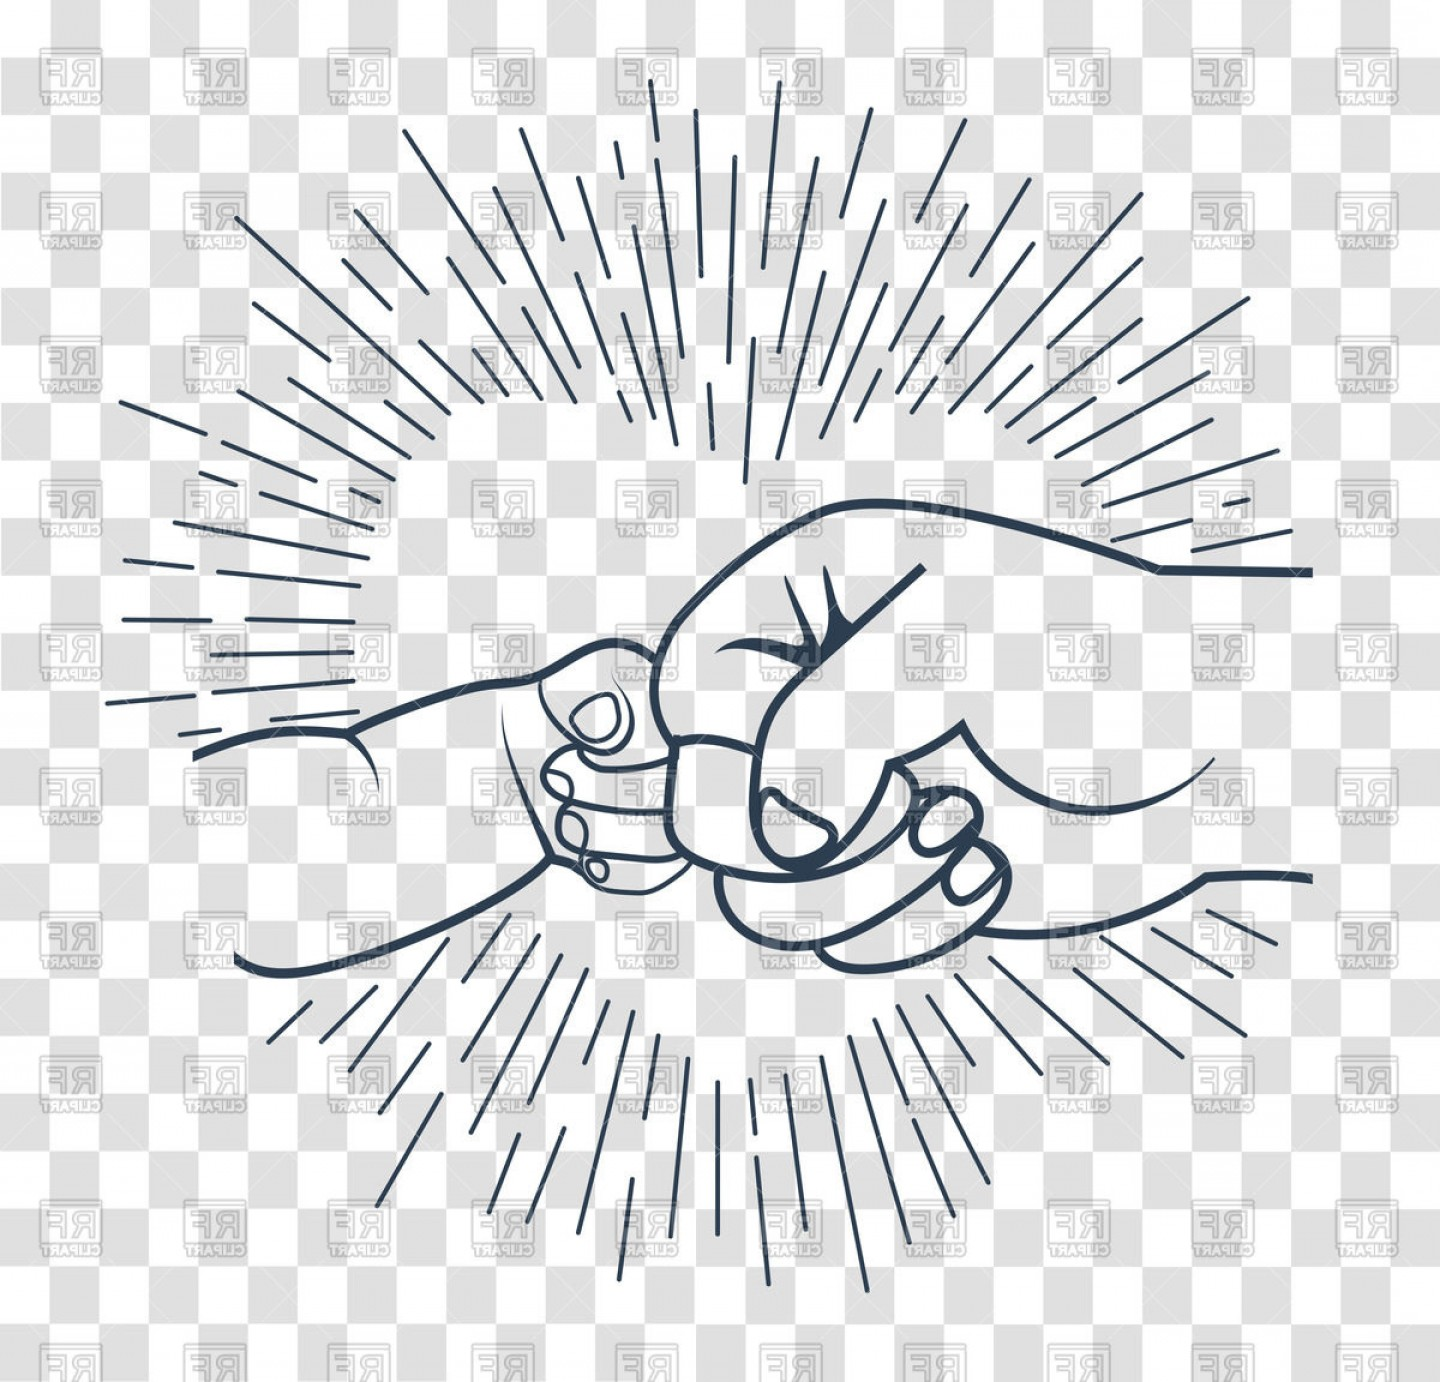 Father son fist bump clipart clipart royalty free download Friendship Hands Father And Child Gesture Fathers Day Vector Clipart ... clipart royalty free download